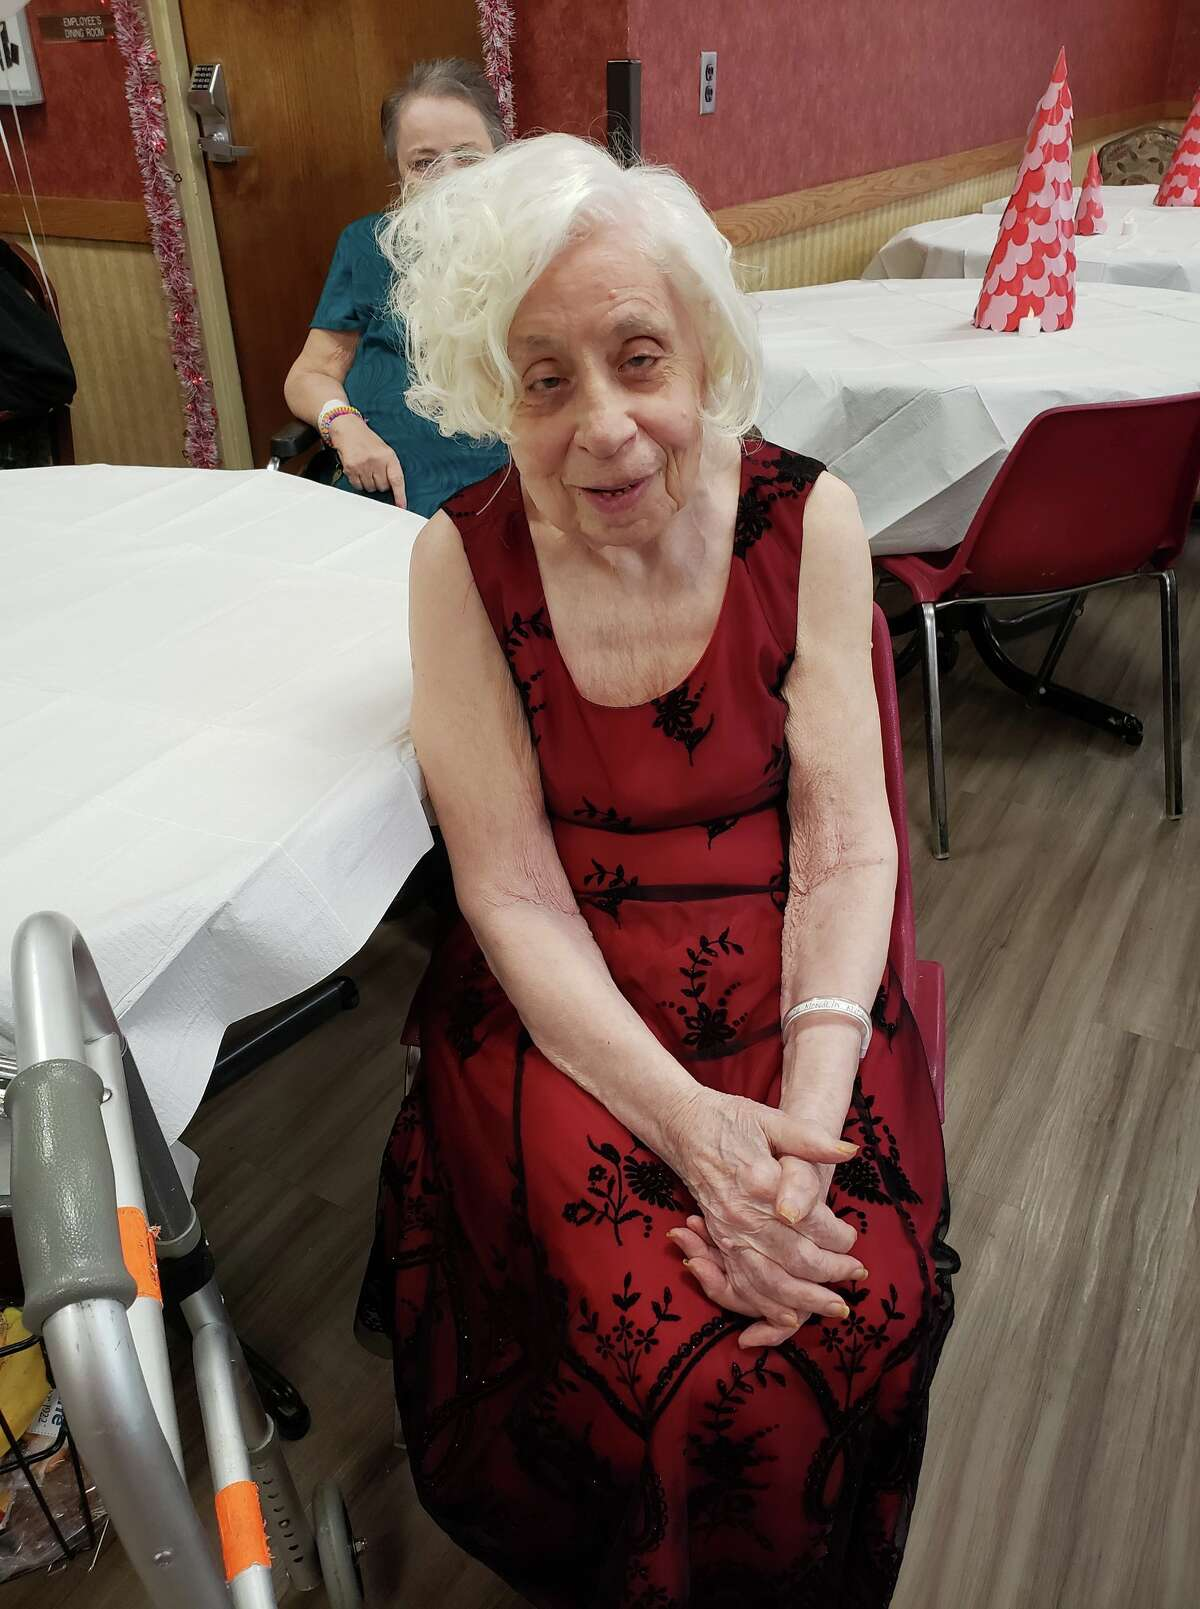 Rita Drozdzal, 91, was beloved by her many nieces and nephews. She was living at the Troy Center for Rehabilitation and Nursing on Marvin Avenue when she died of COVID-19 on Aug. 8, 2020.